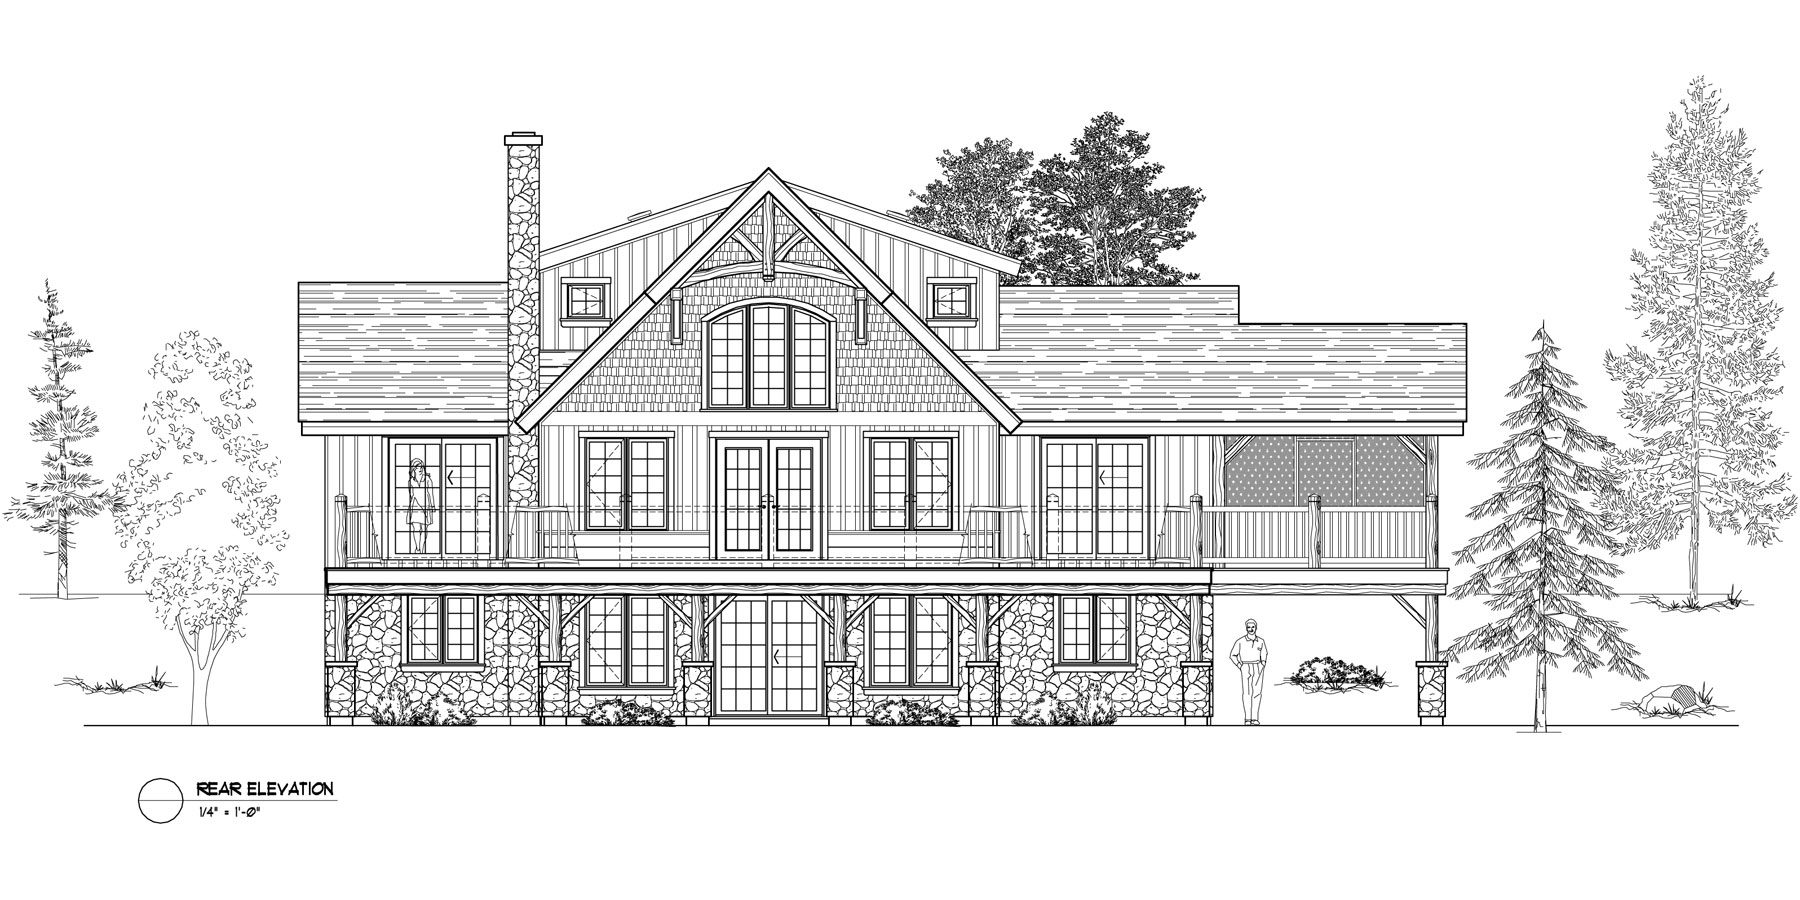 Normerica Timber Frames, House Plan, The Carleton 3115, Rear Elevation